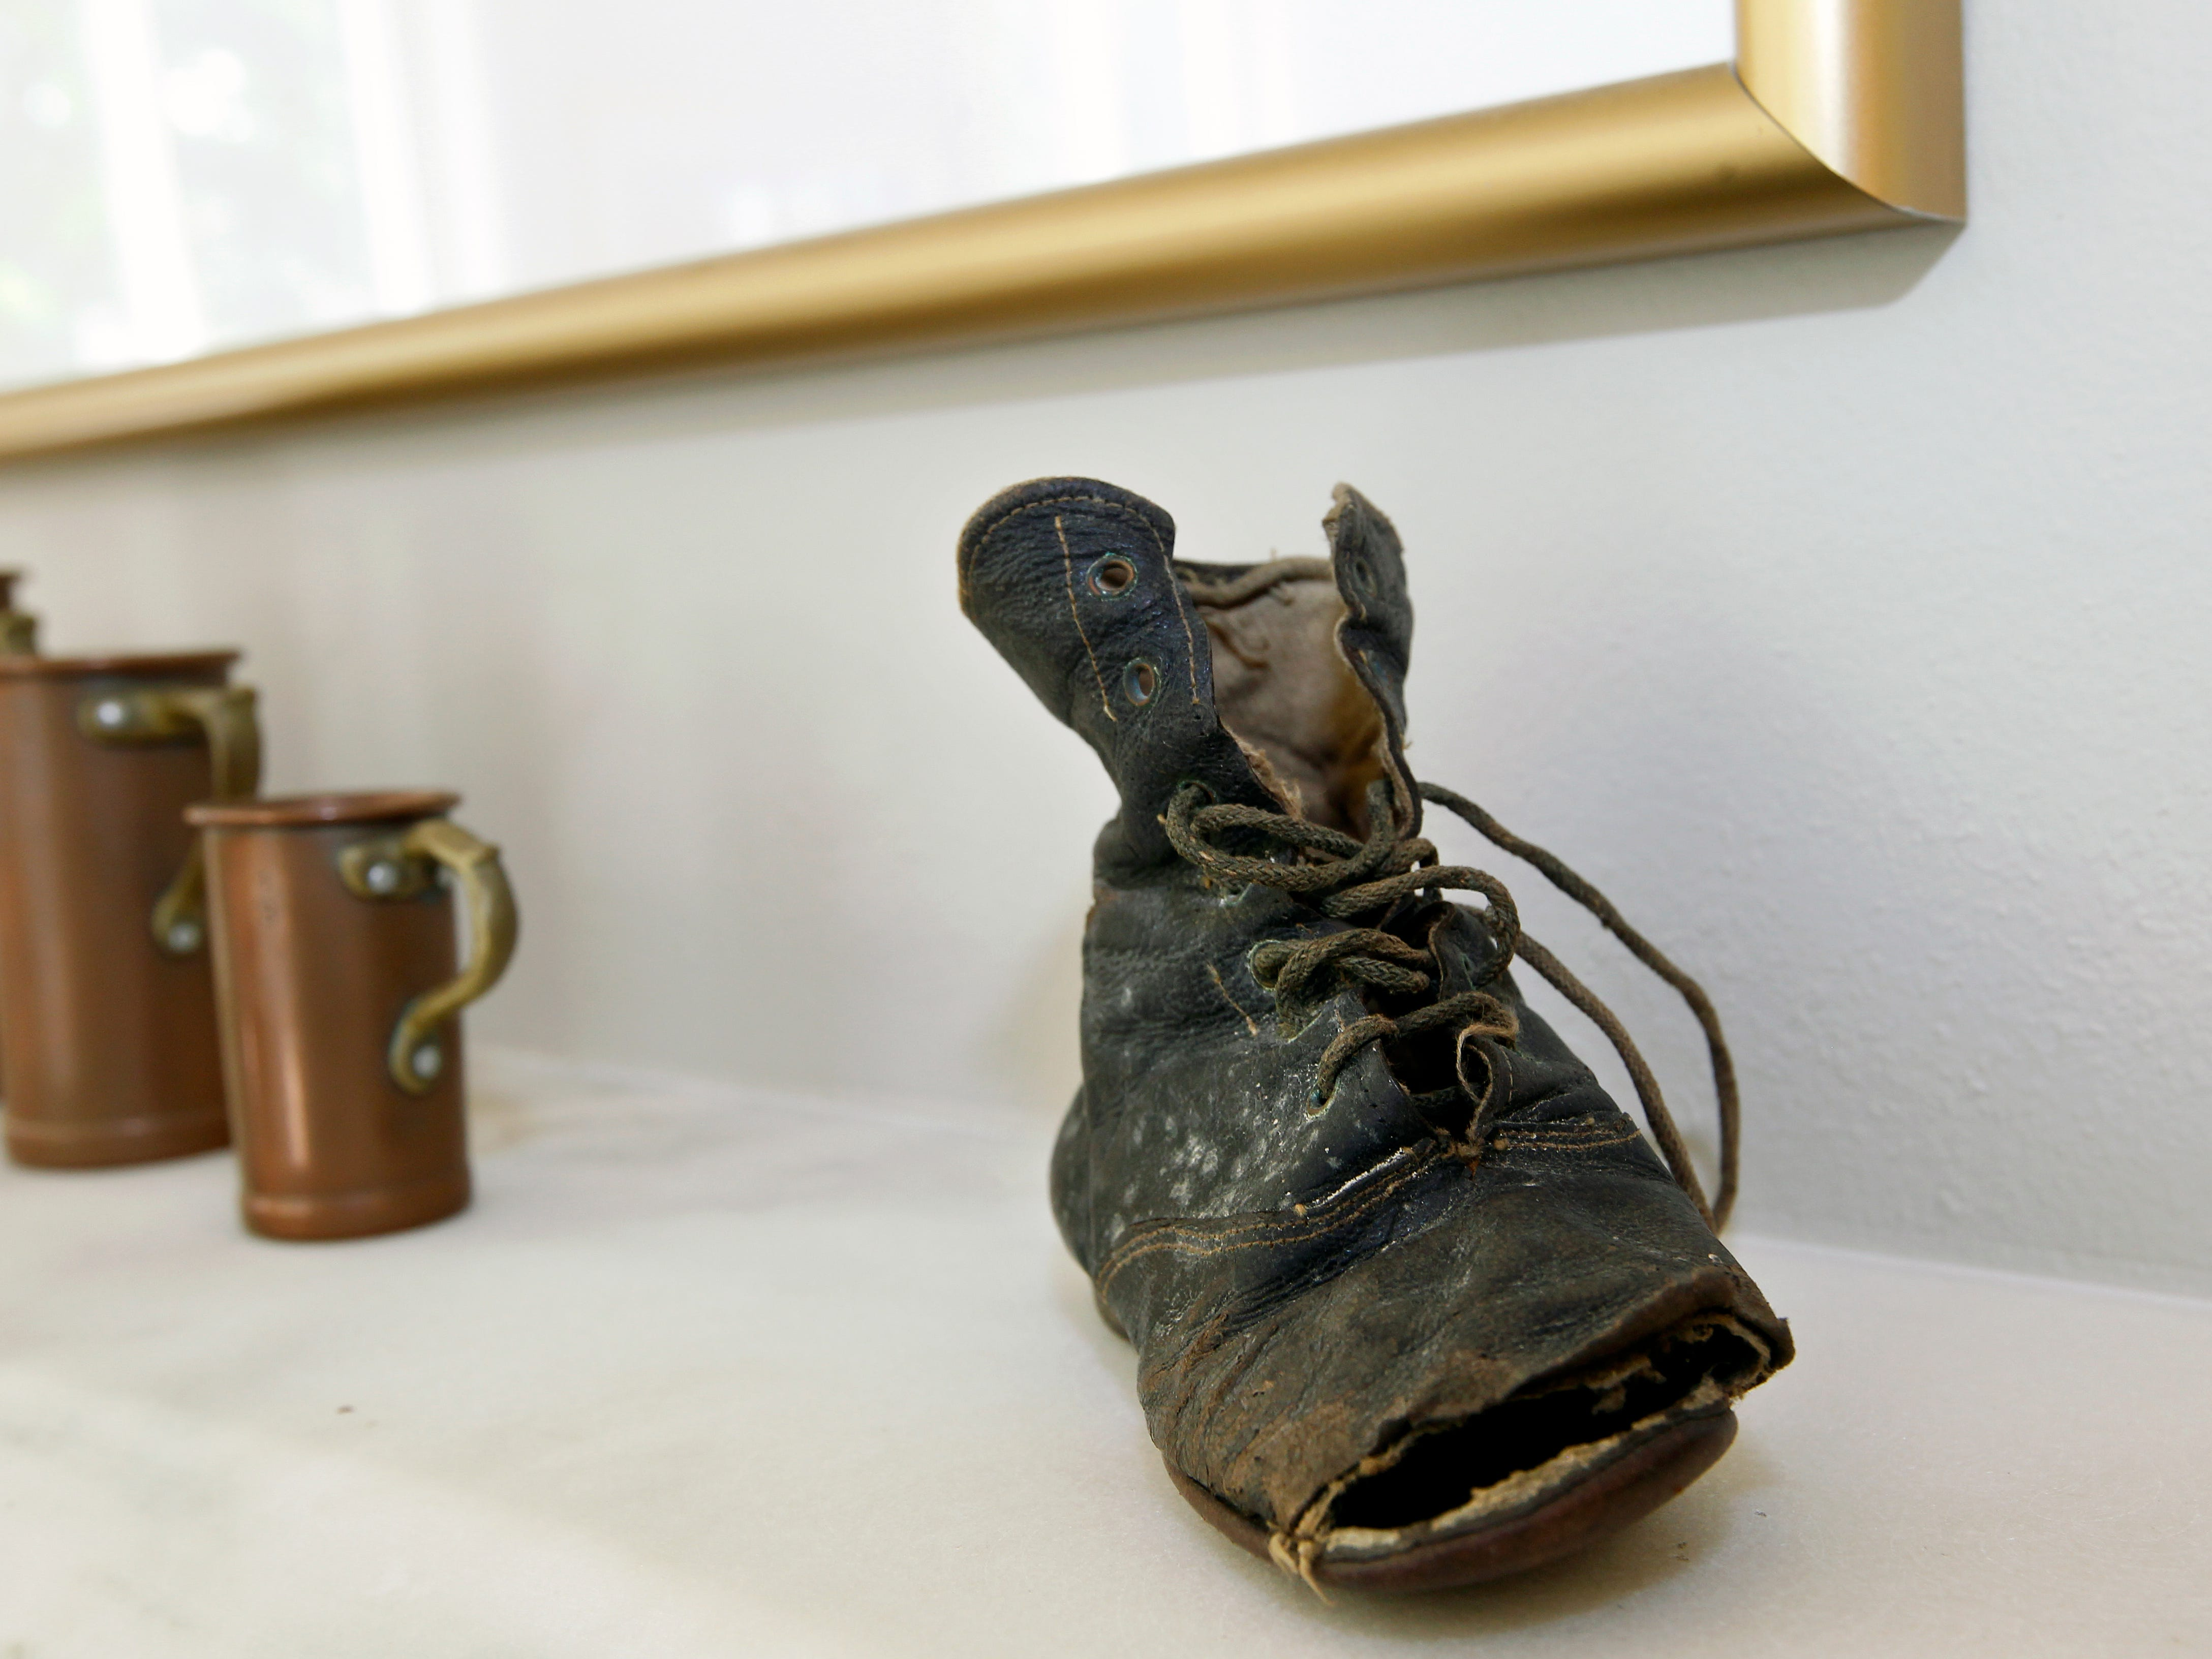 This child's shoe on displayed on the fireplace mantel was found in the wall by the previous owner.